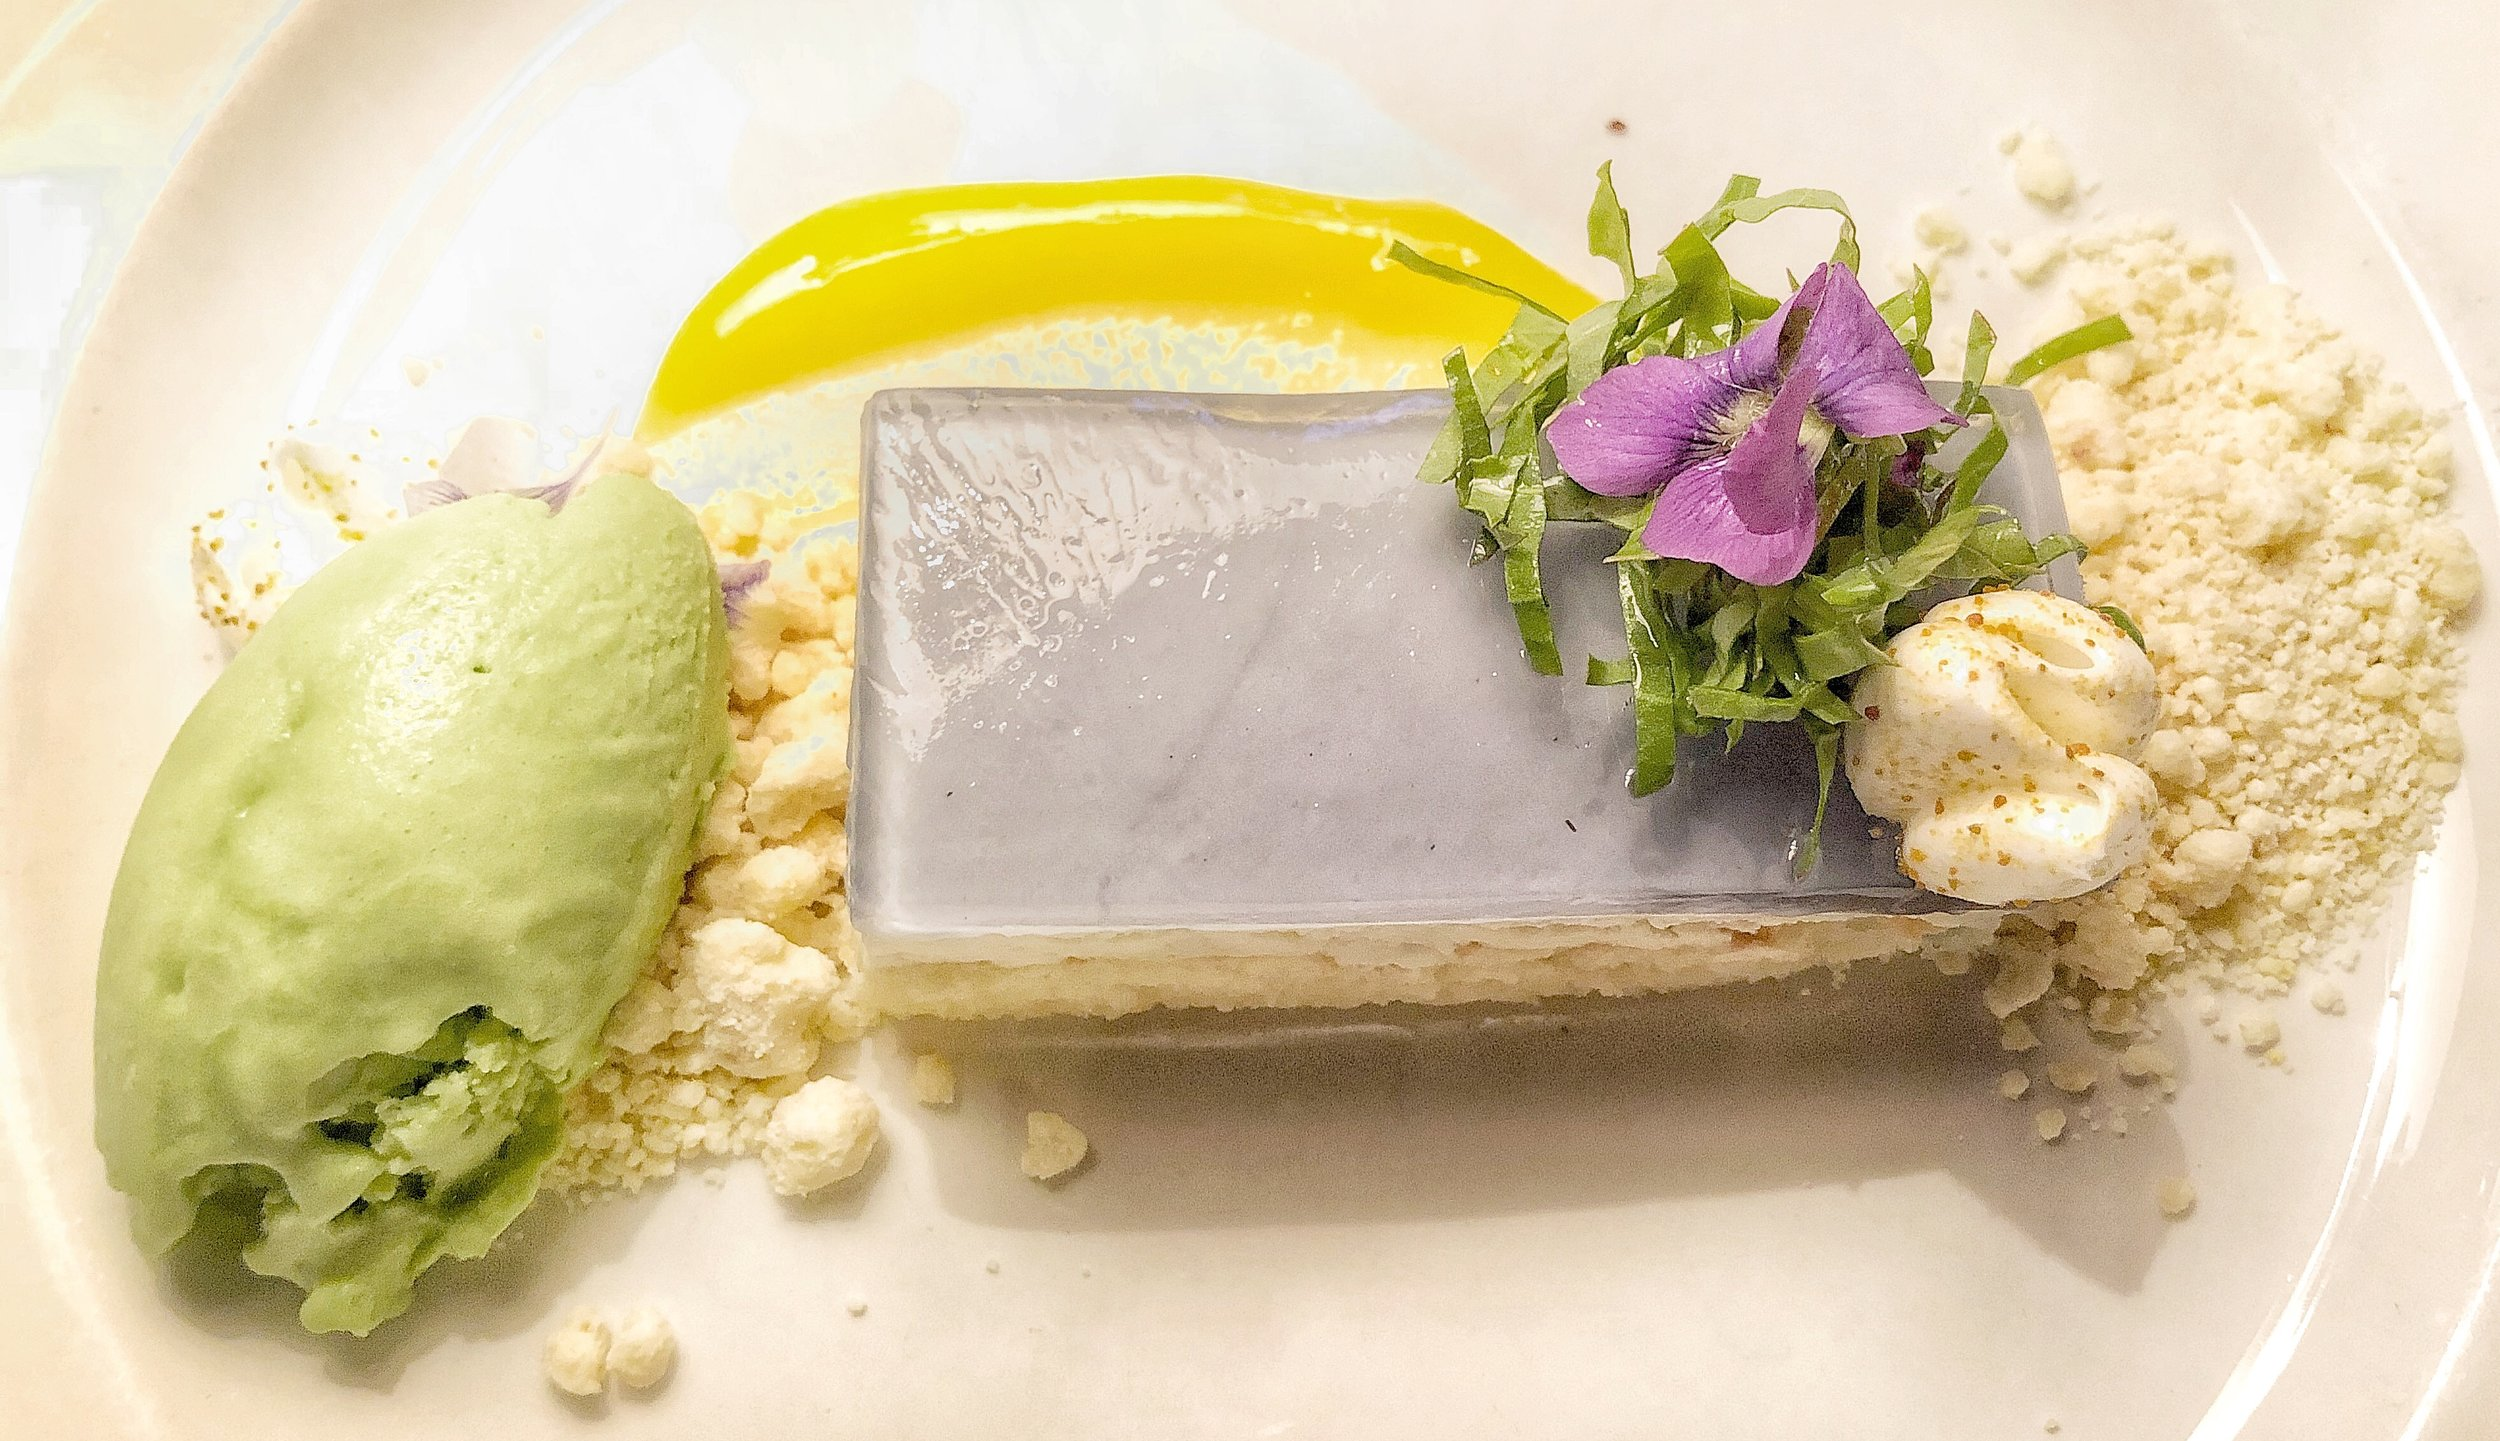 12. 300 East - A Charlotte classic with Ashley Boyd at the helm of the knock-out dessert program. Wood sorrel ice cream with lavender honey cake? YES, WE'LL TAKE 300 PLEASE.